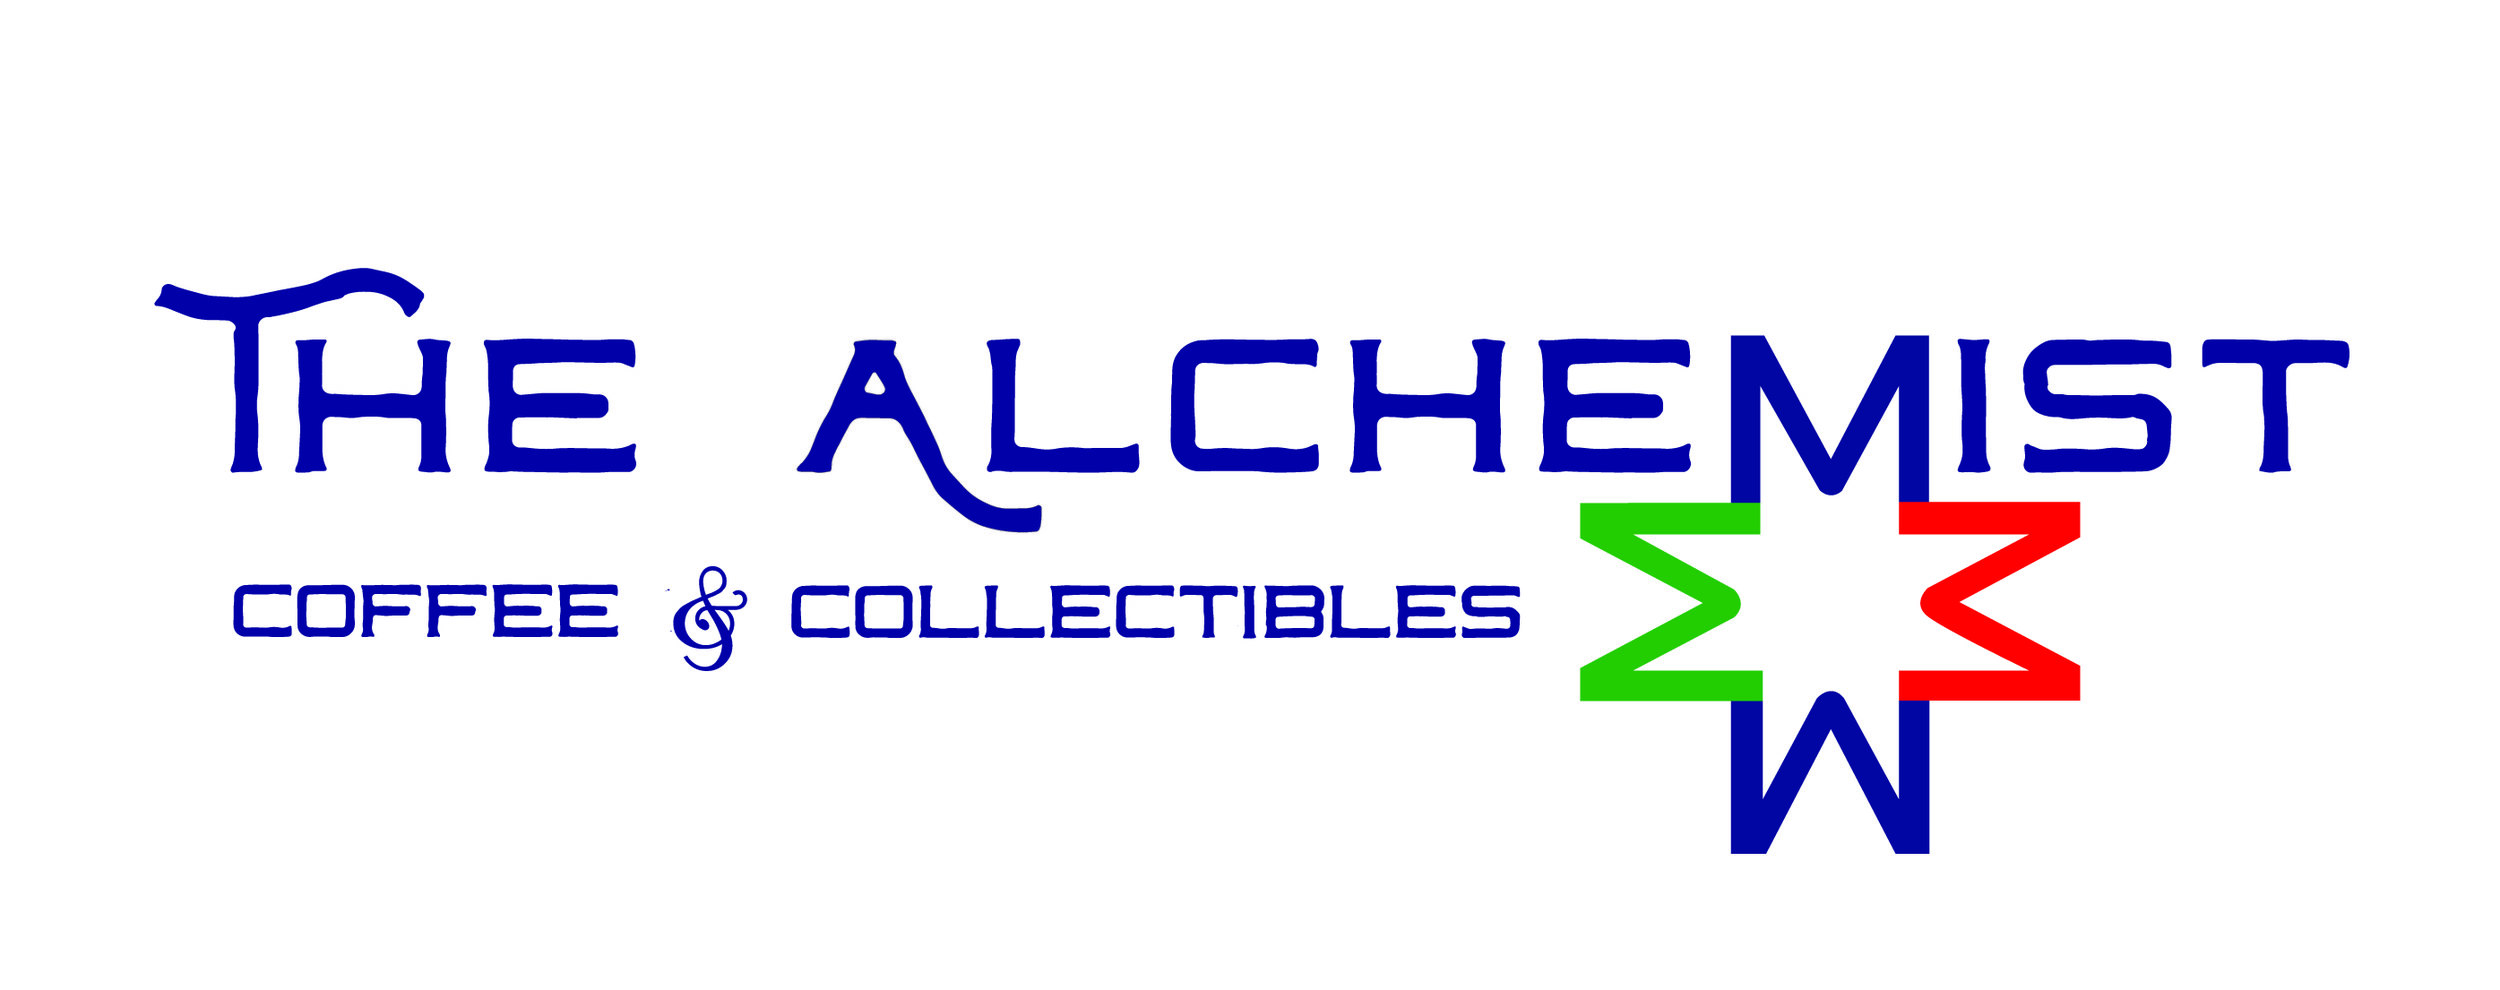 logo-the-alchemist-FINAL_logo-the-alchemist - Kristen Minghelli Vaini.jpg